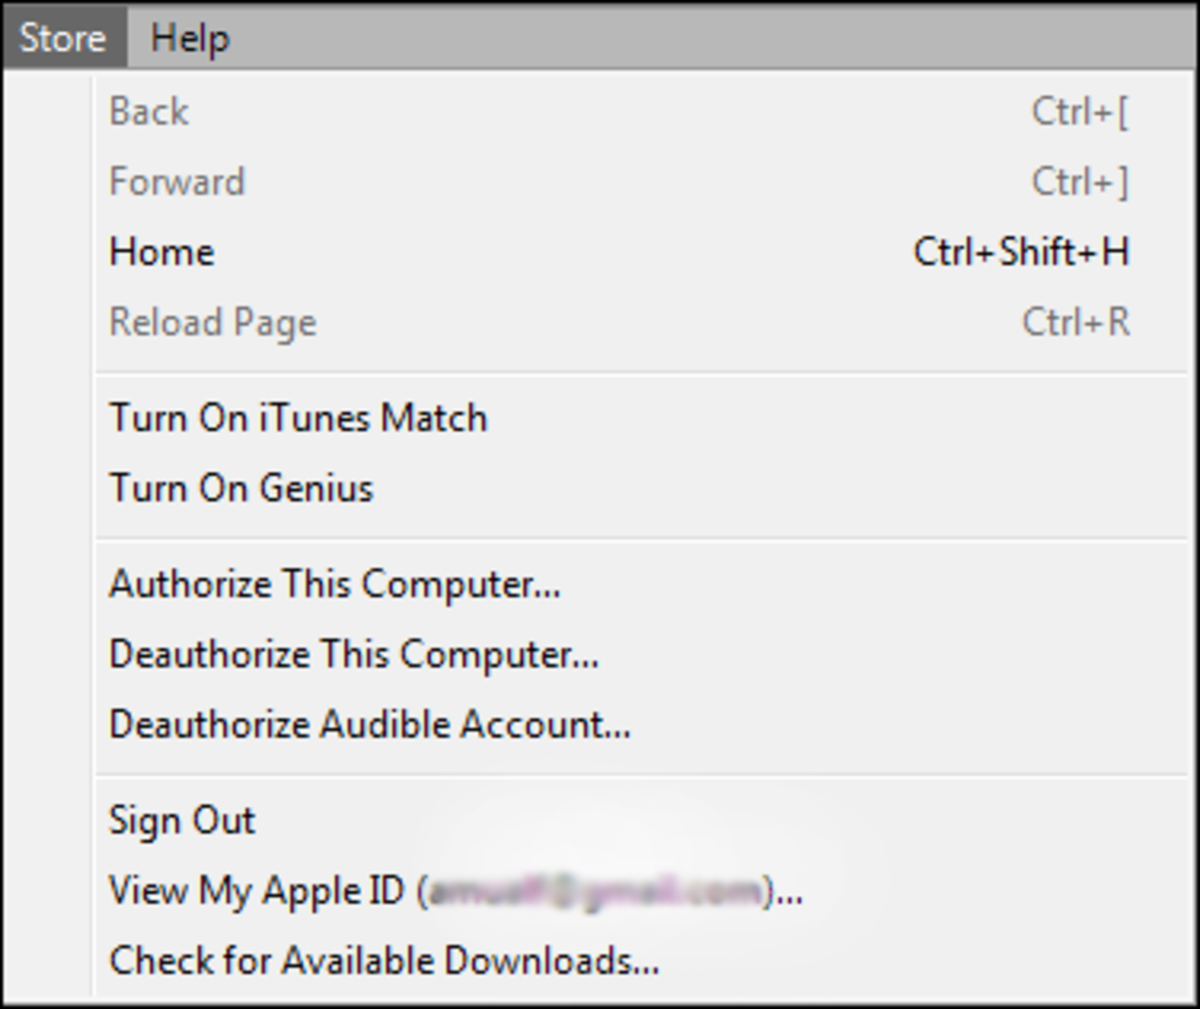 how-to-authorize-and-deauthorise-a-computer-in-itunes